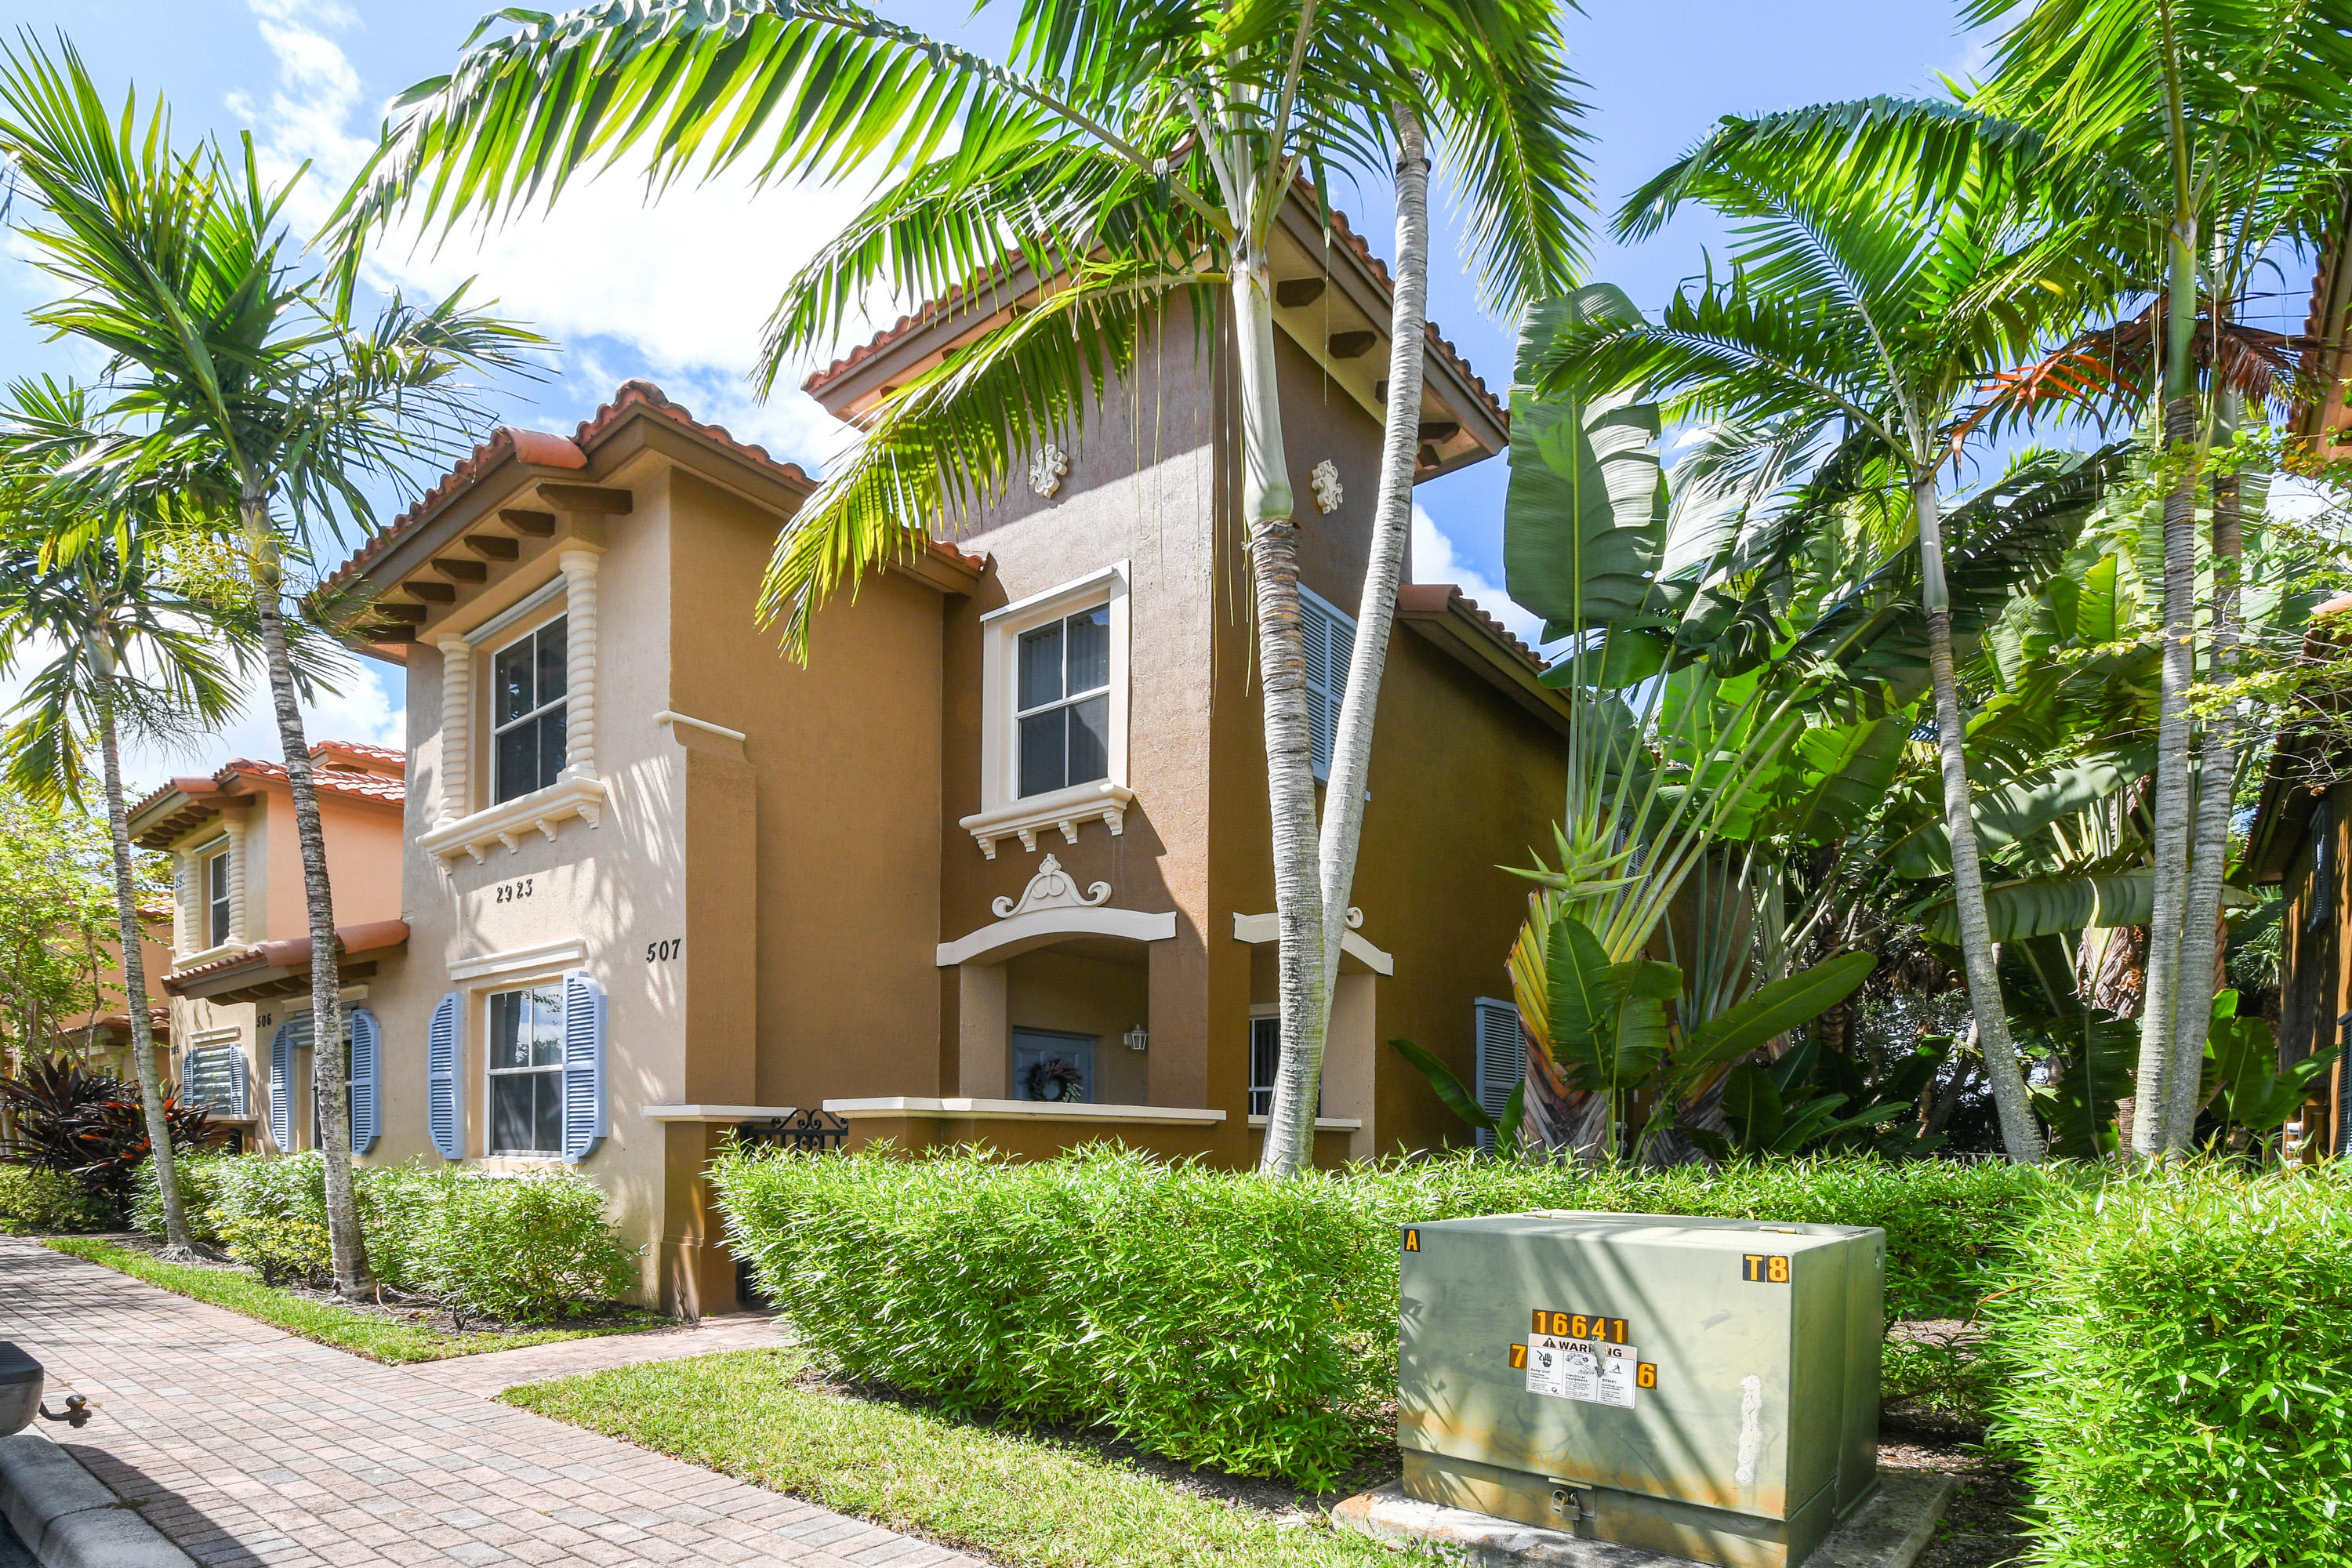 2923 Hope Valley Street 507, West Palm Beach, FL 33411